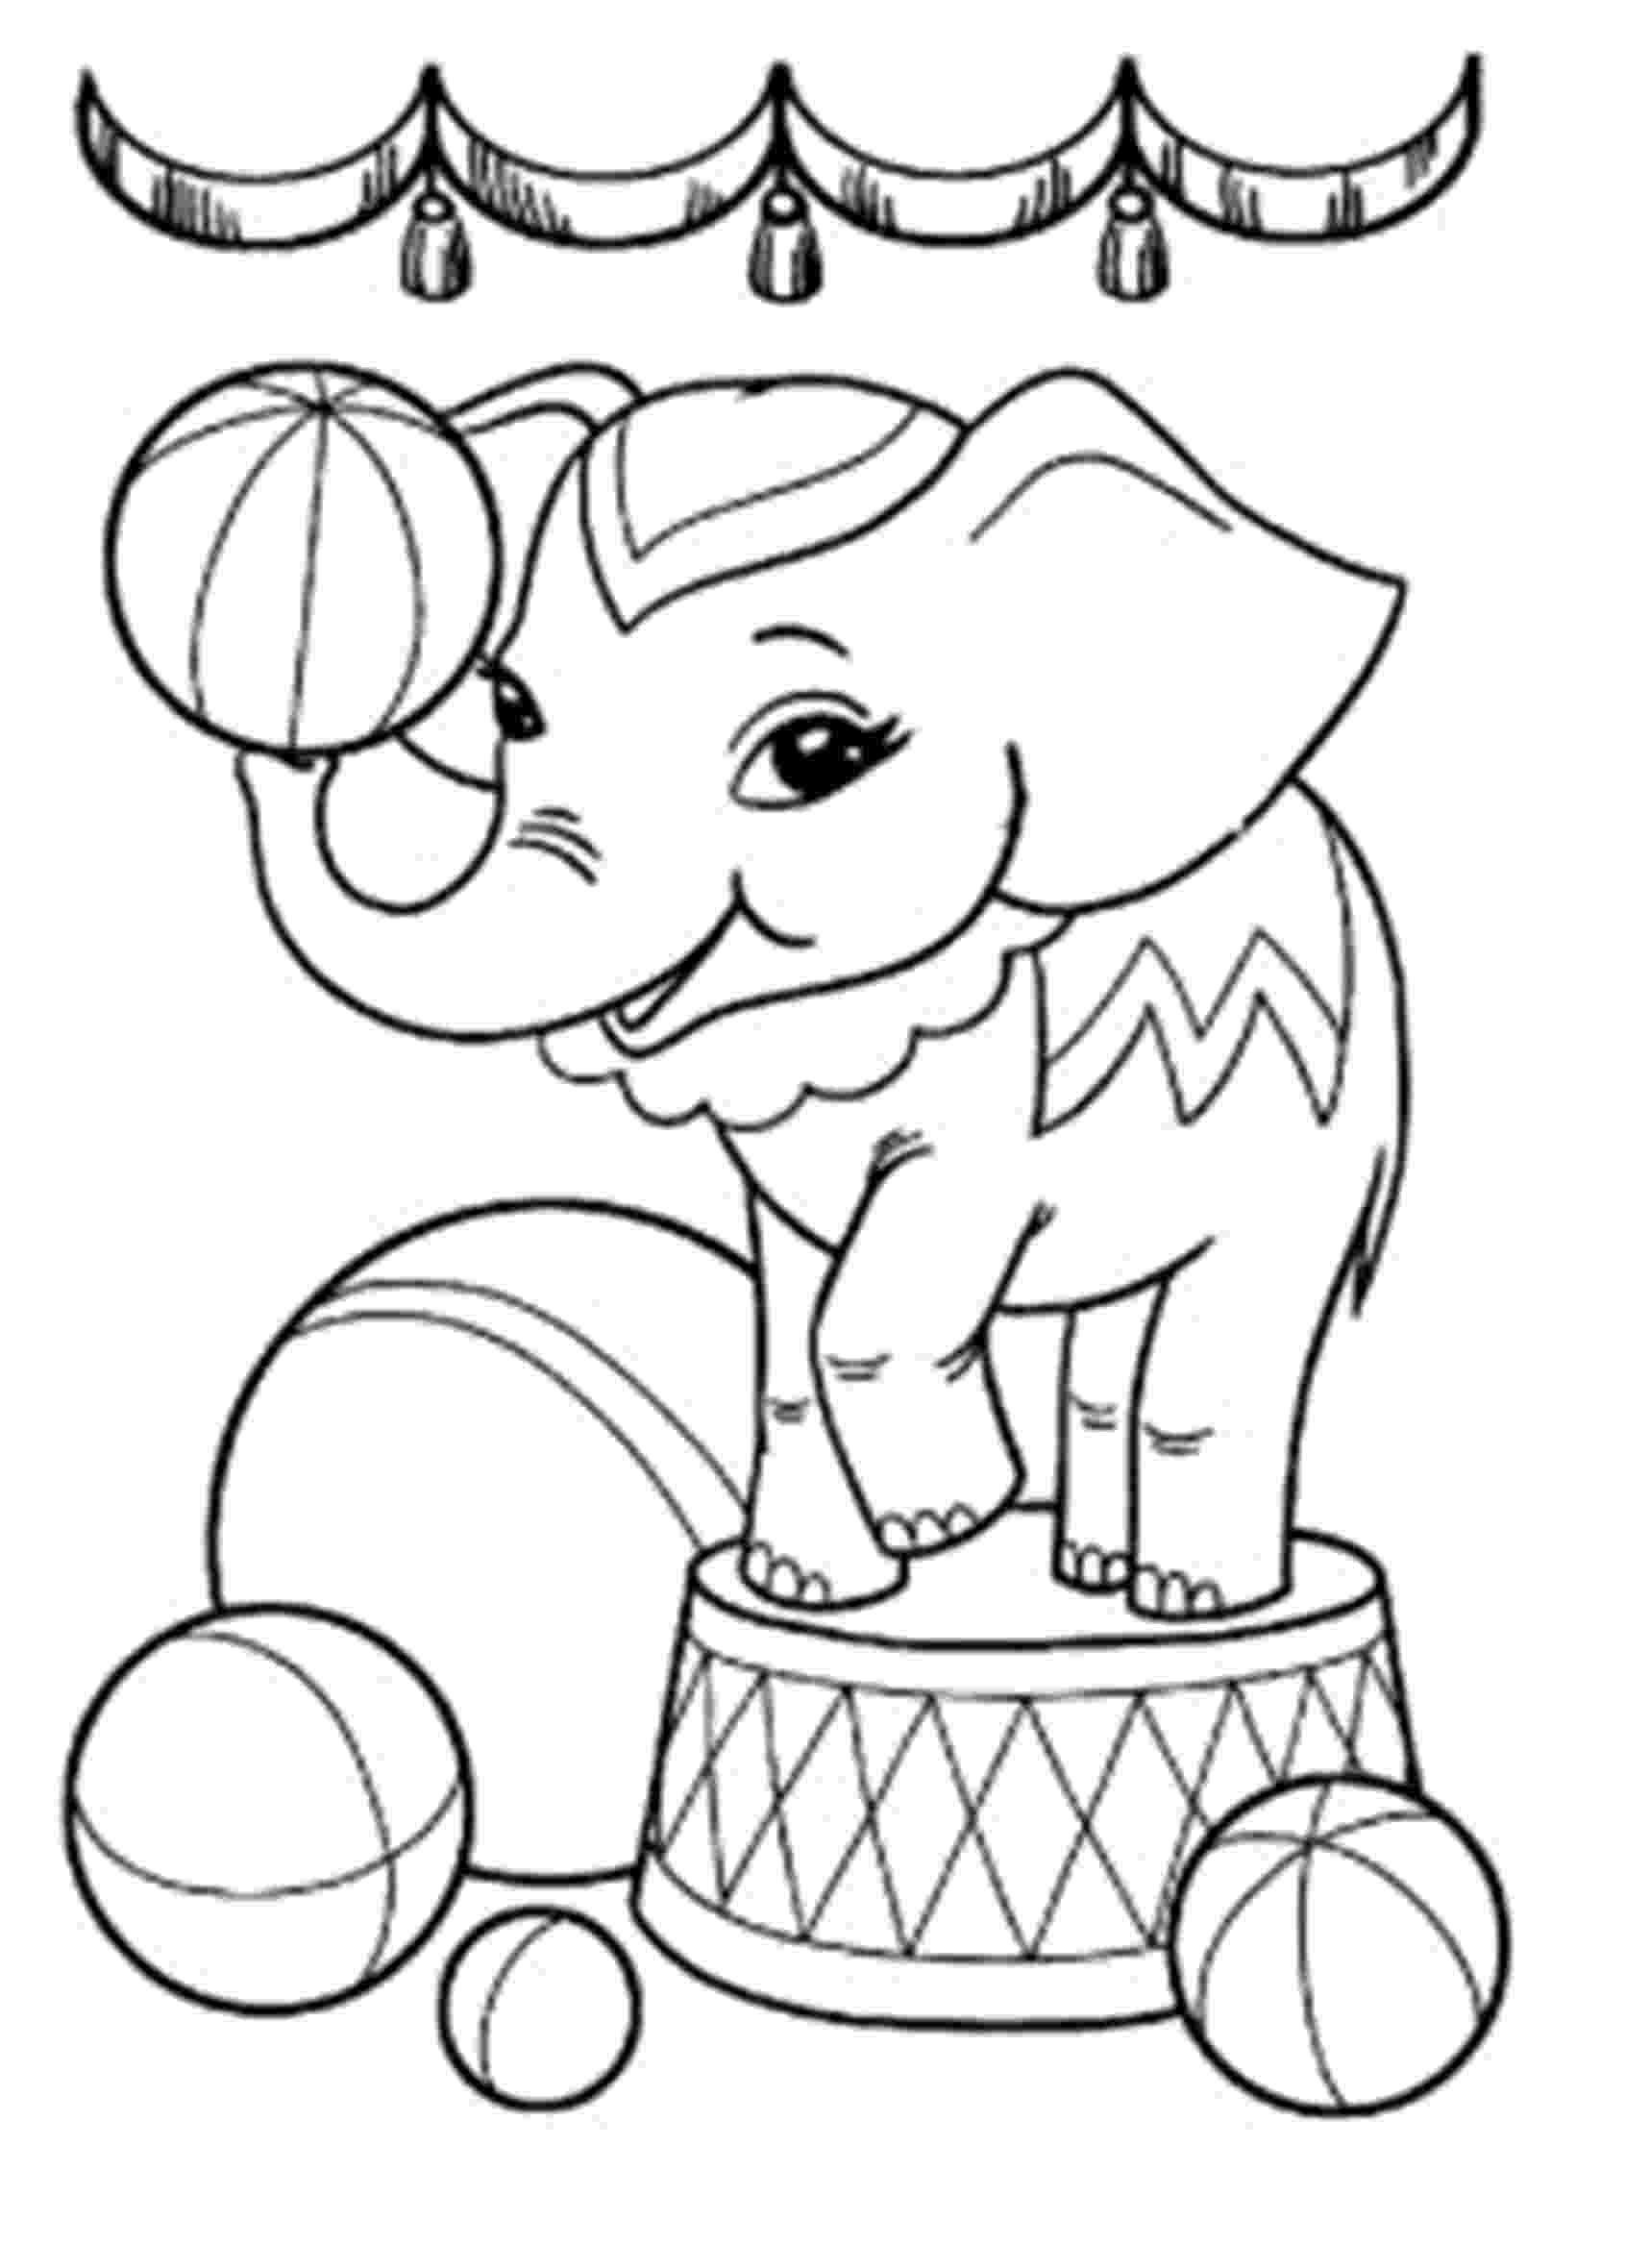 elephant color sheet elephant coloring pages for kids printable for free color sheet elephant